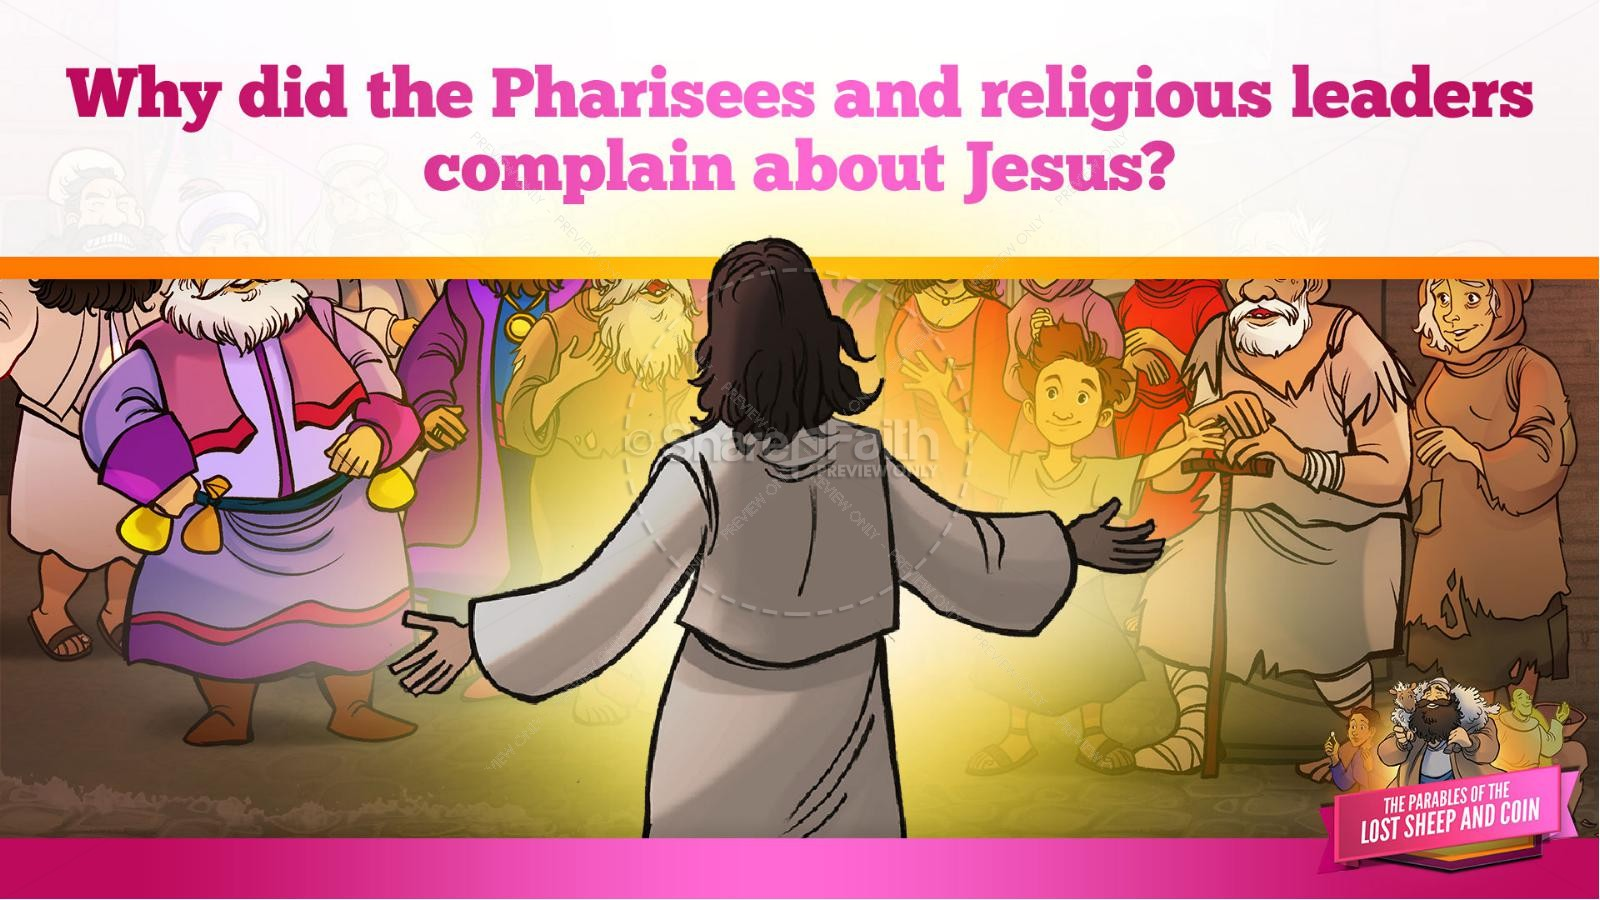 Luke 15 The Parables of the Lost Sheep and Coin Kids Bible Story | slide 11